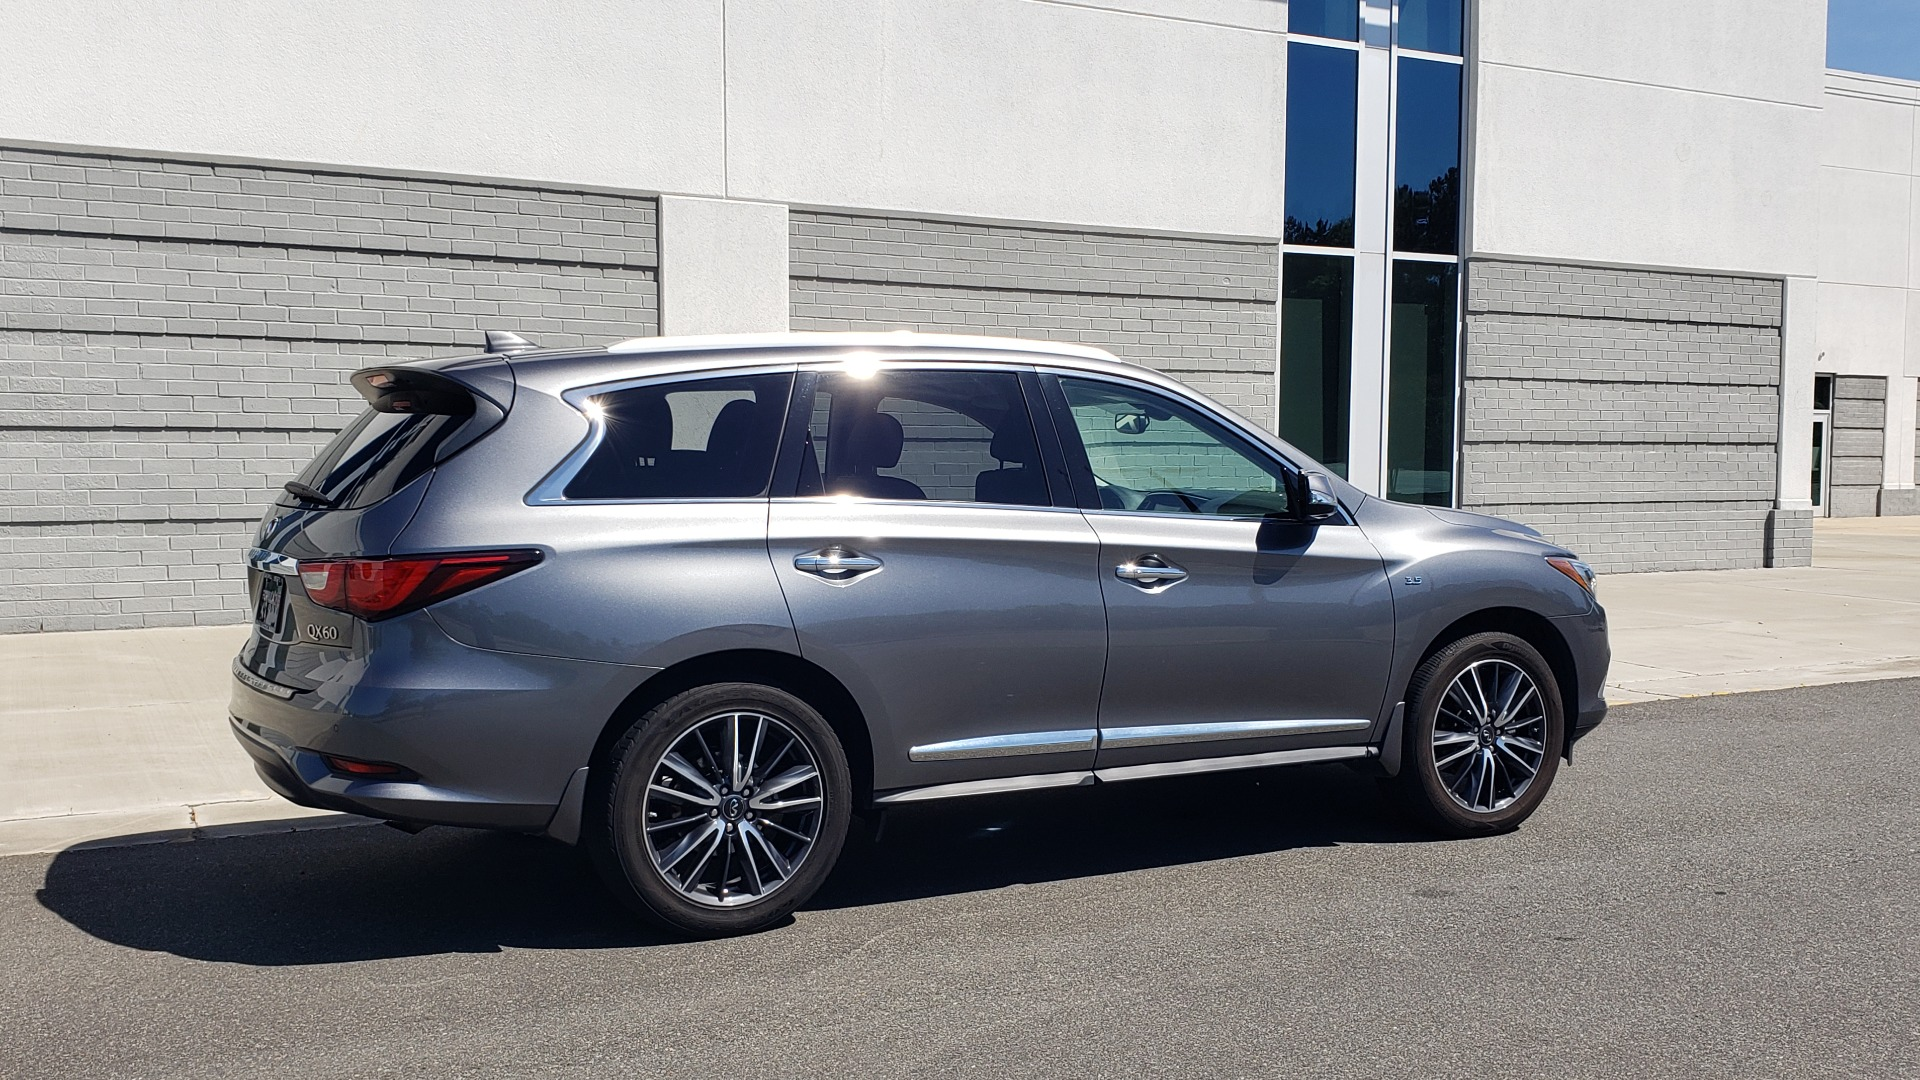 Used 2018 INFINITI QX60 3.5L V6 / FWD / CVT TRANS / NAV / SUNROOF / 3-ROWS / REARVIEW for sale $31,999 at Formula Imports in Charlotte NC 28227 8